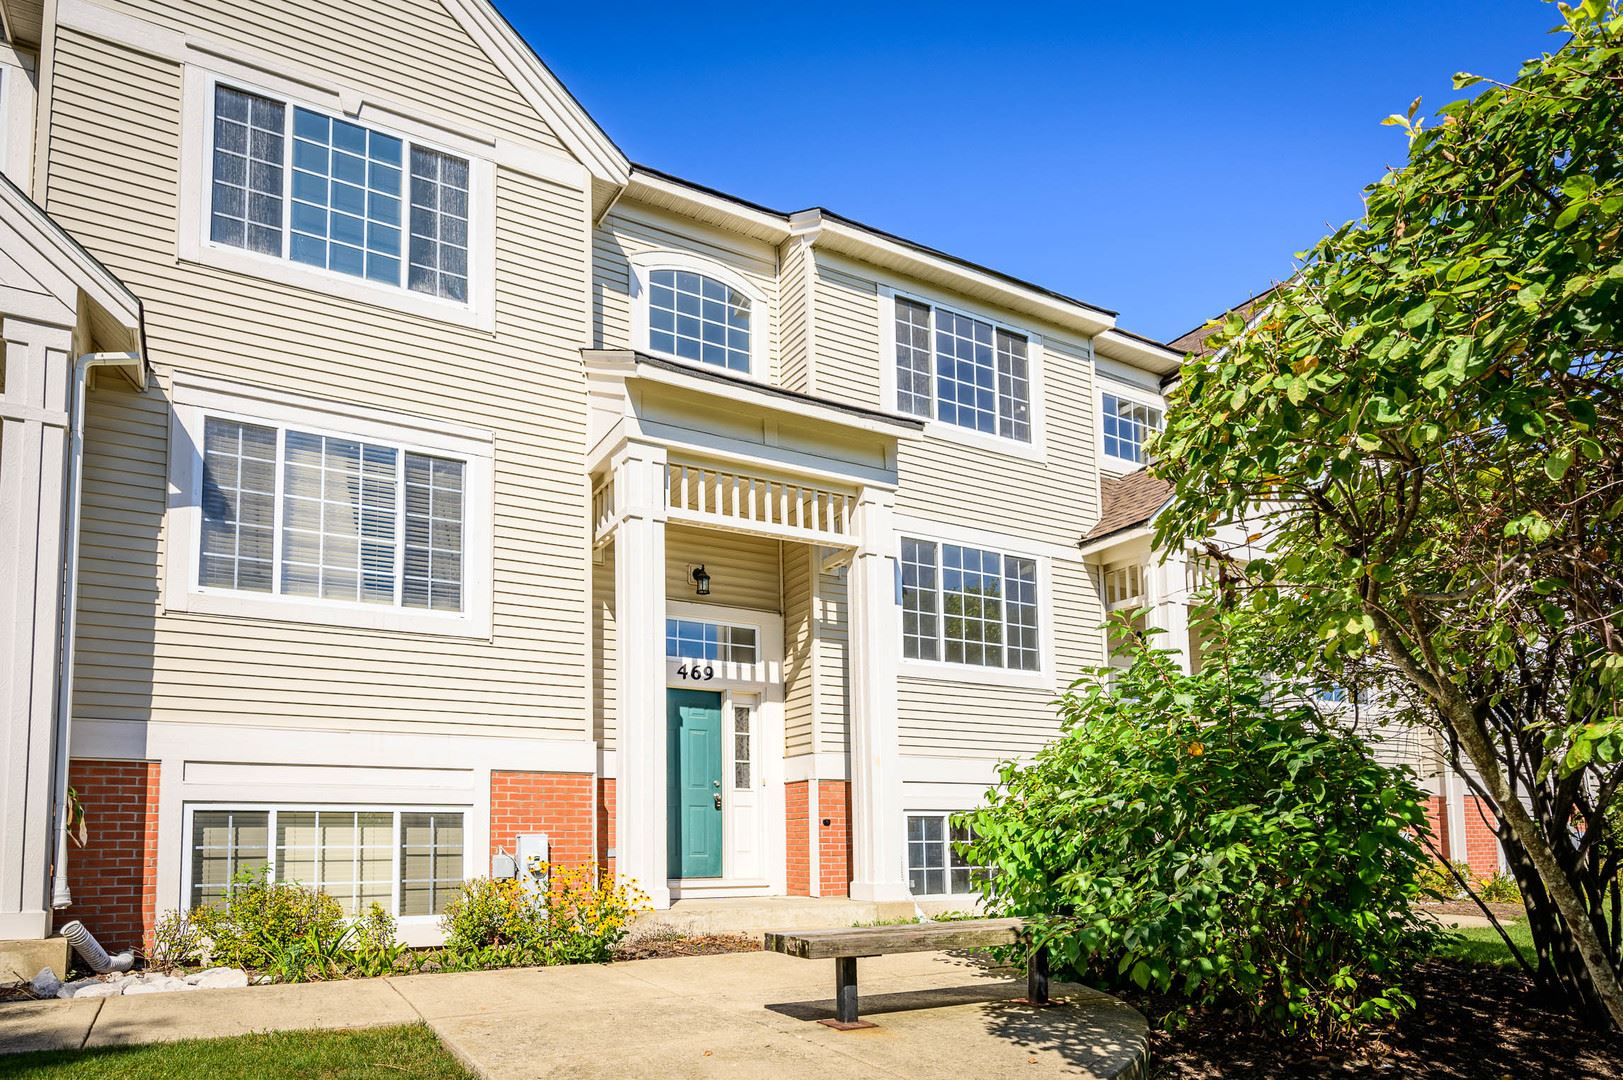 469 Cary Woods Circle #469, Cary, IL 60013 - #: 11237573